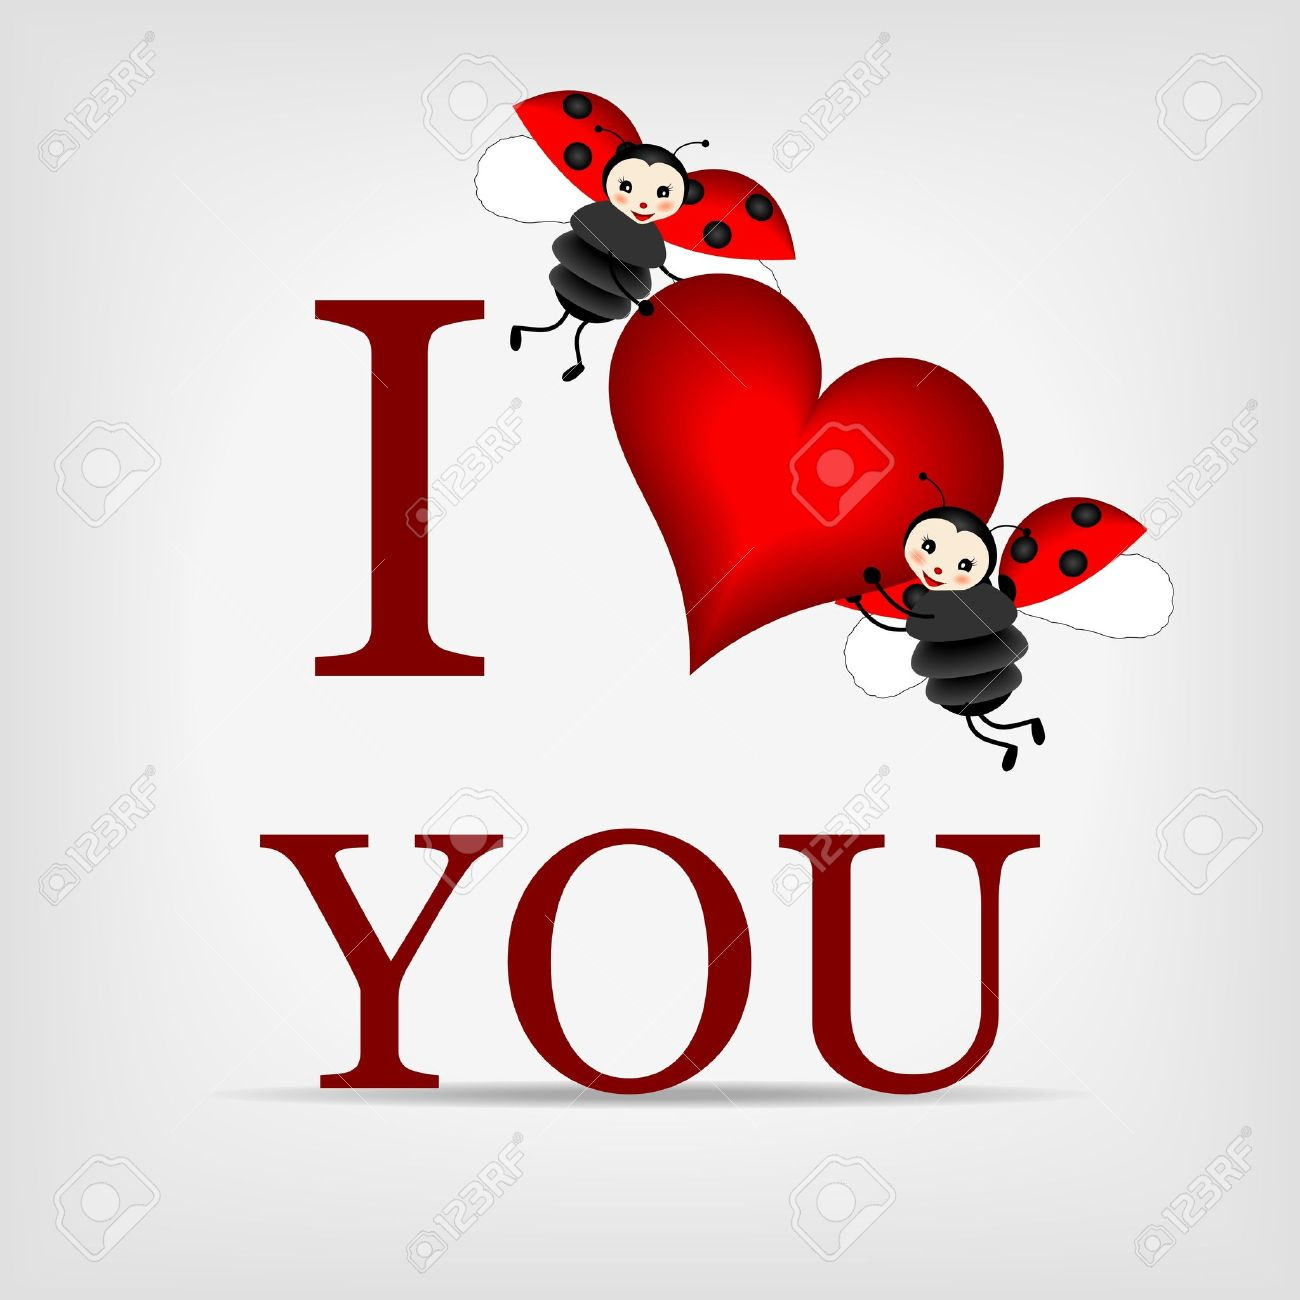 Love You Bilder Two Happy Ladybugs Holding Big Red Heart With Text I Love You Royalty Free Cliparts, Vectors, And Stock Illustration. Image 12991691.